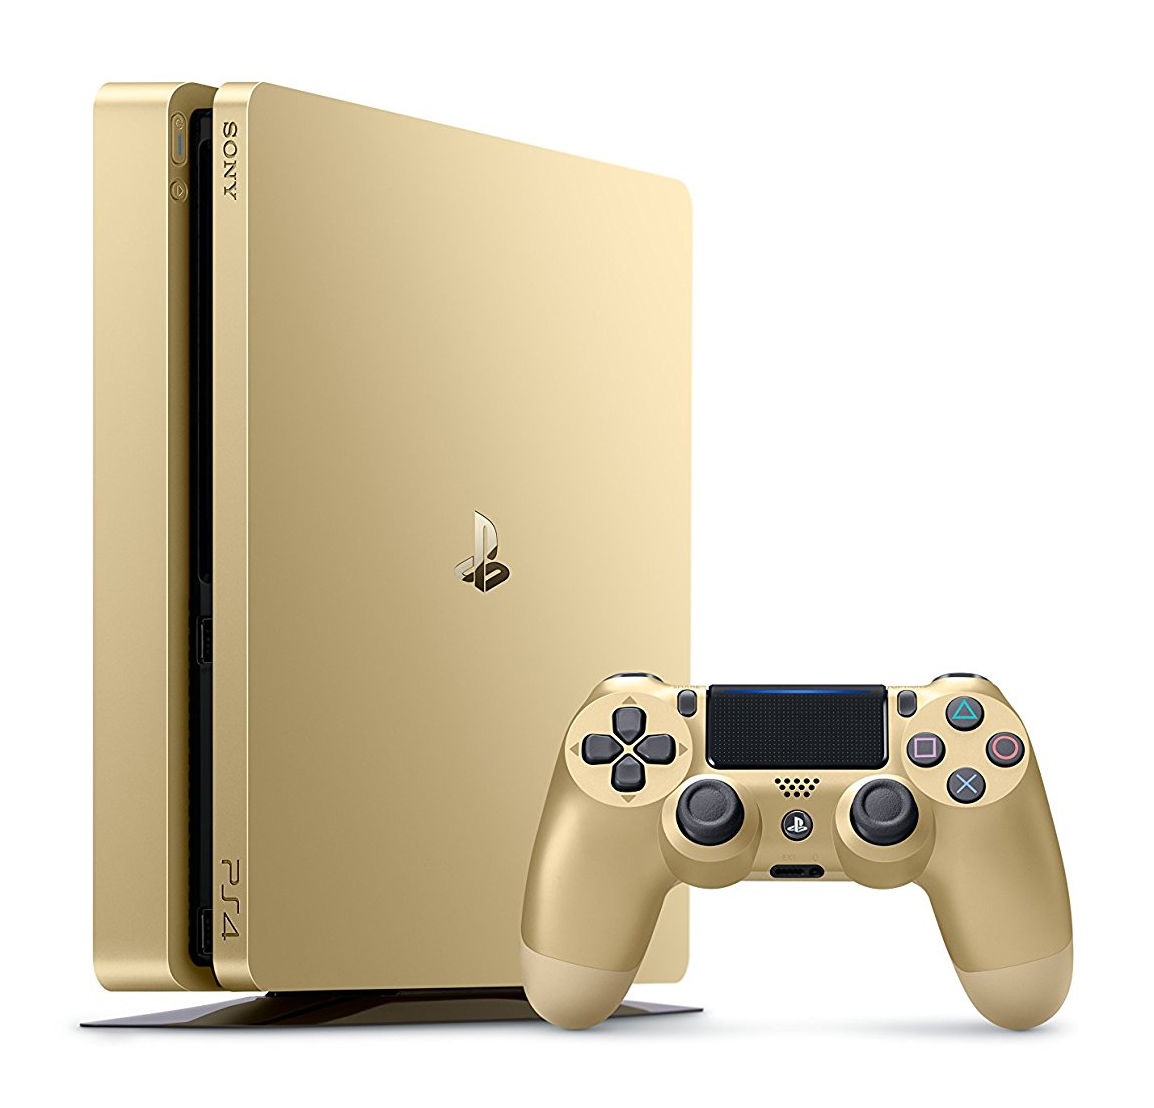 Sony Playstation 4 Slim 1TB Limited Edition Gold Console [$270] [Back in Stock]